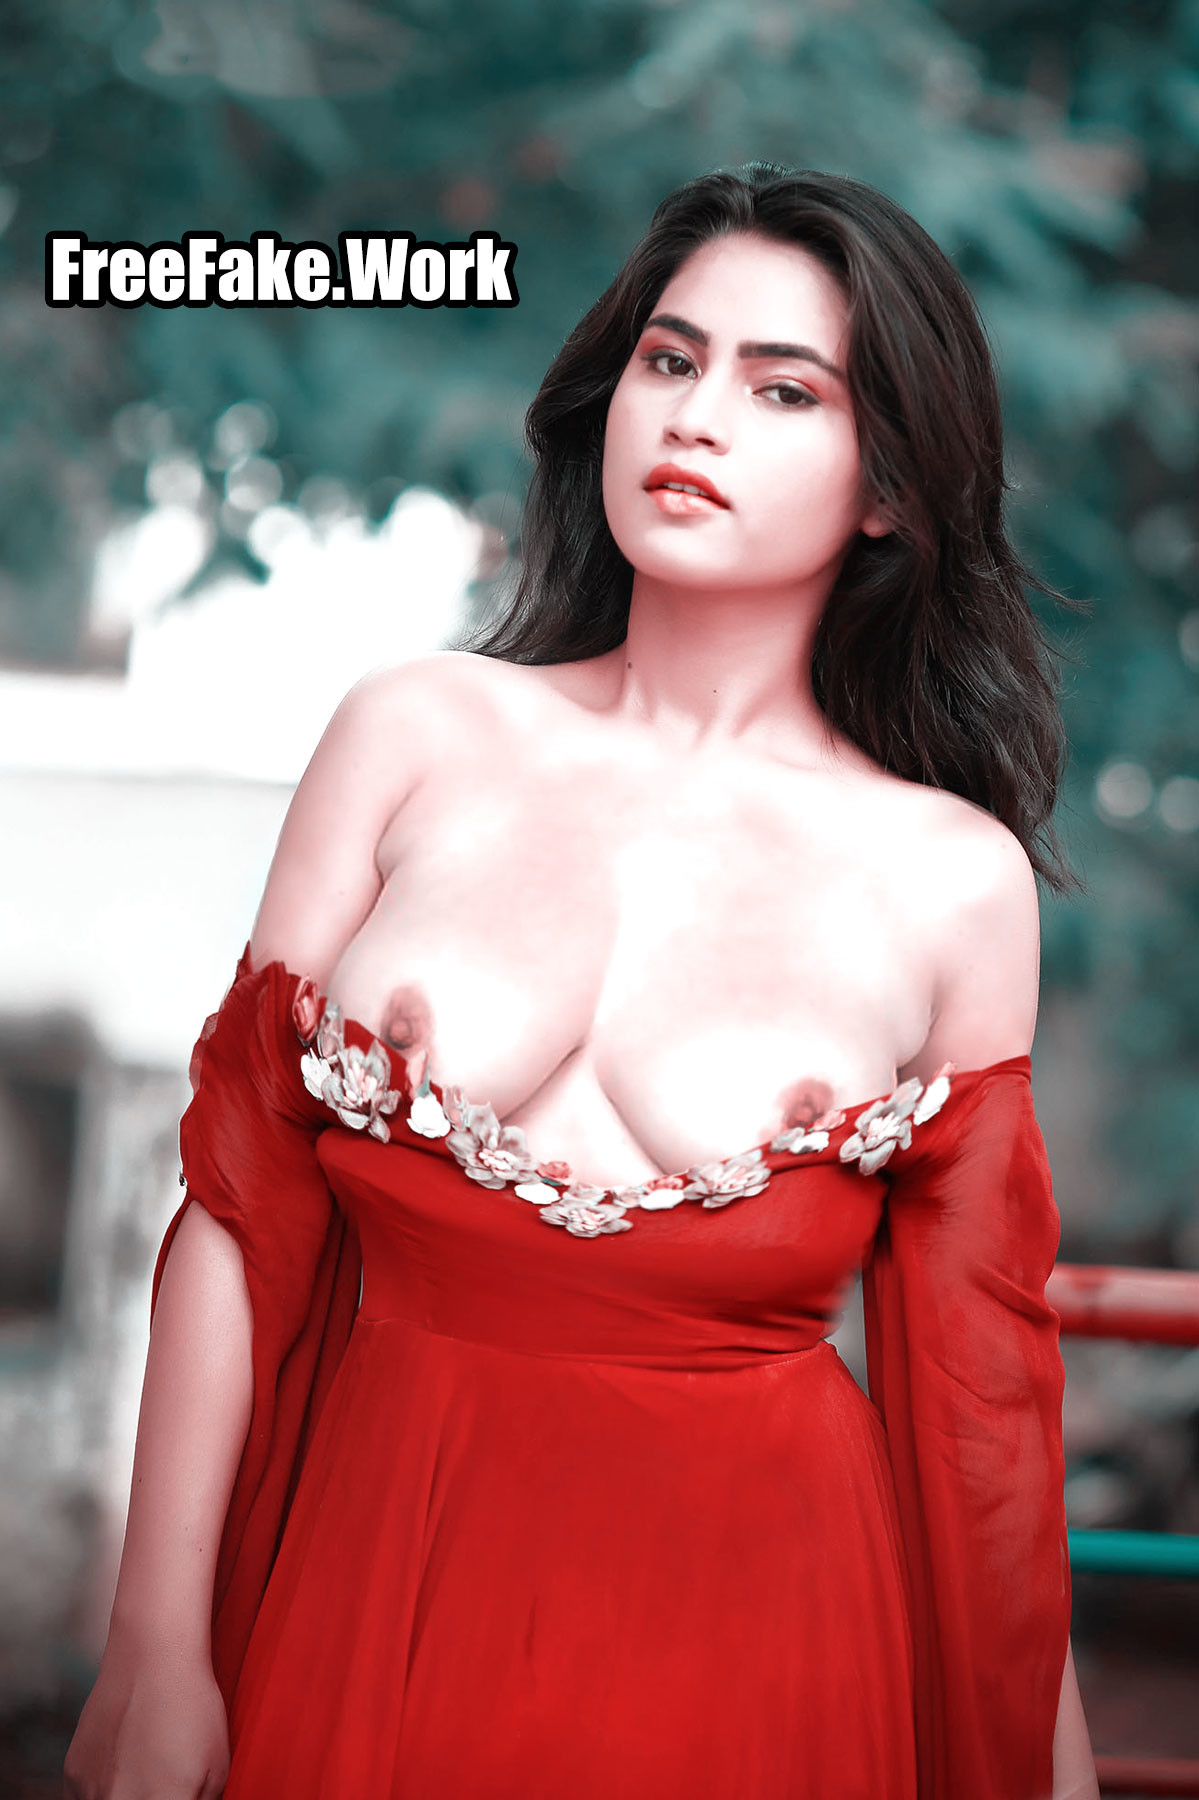 Sowmya-Dhanavath-nude-boobs-exposed-without-bra-outdoor-photoshoot-blouse-slipped.jpg